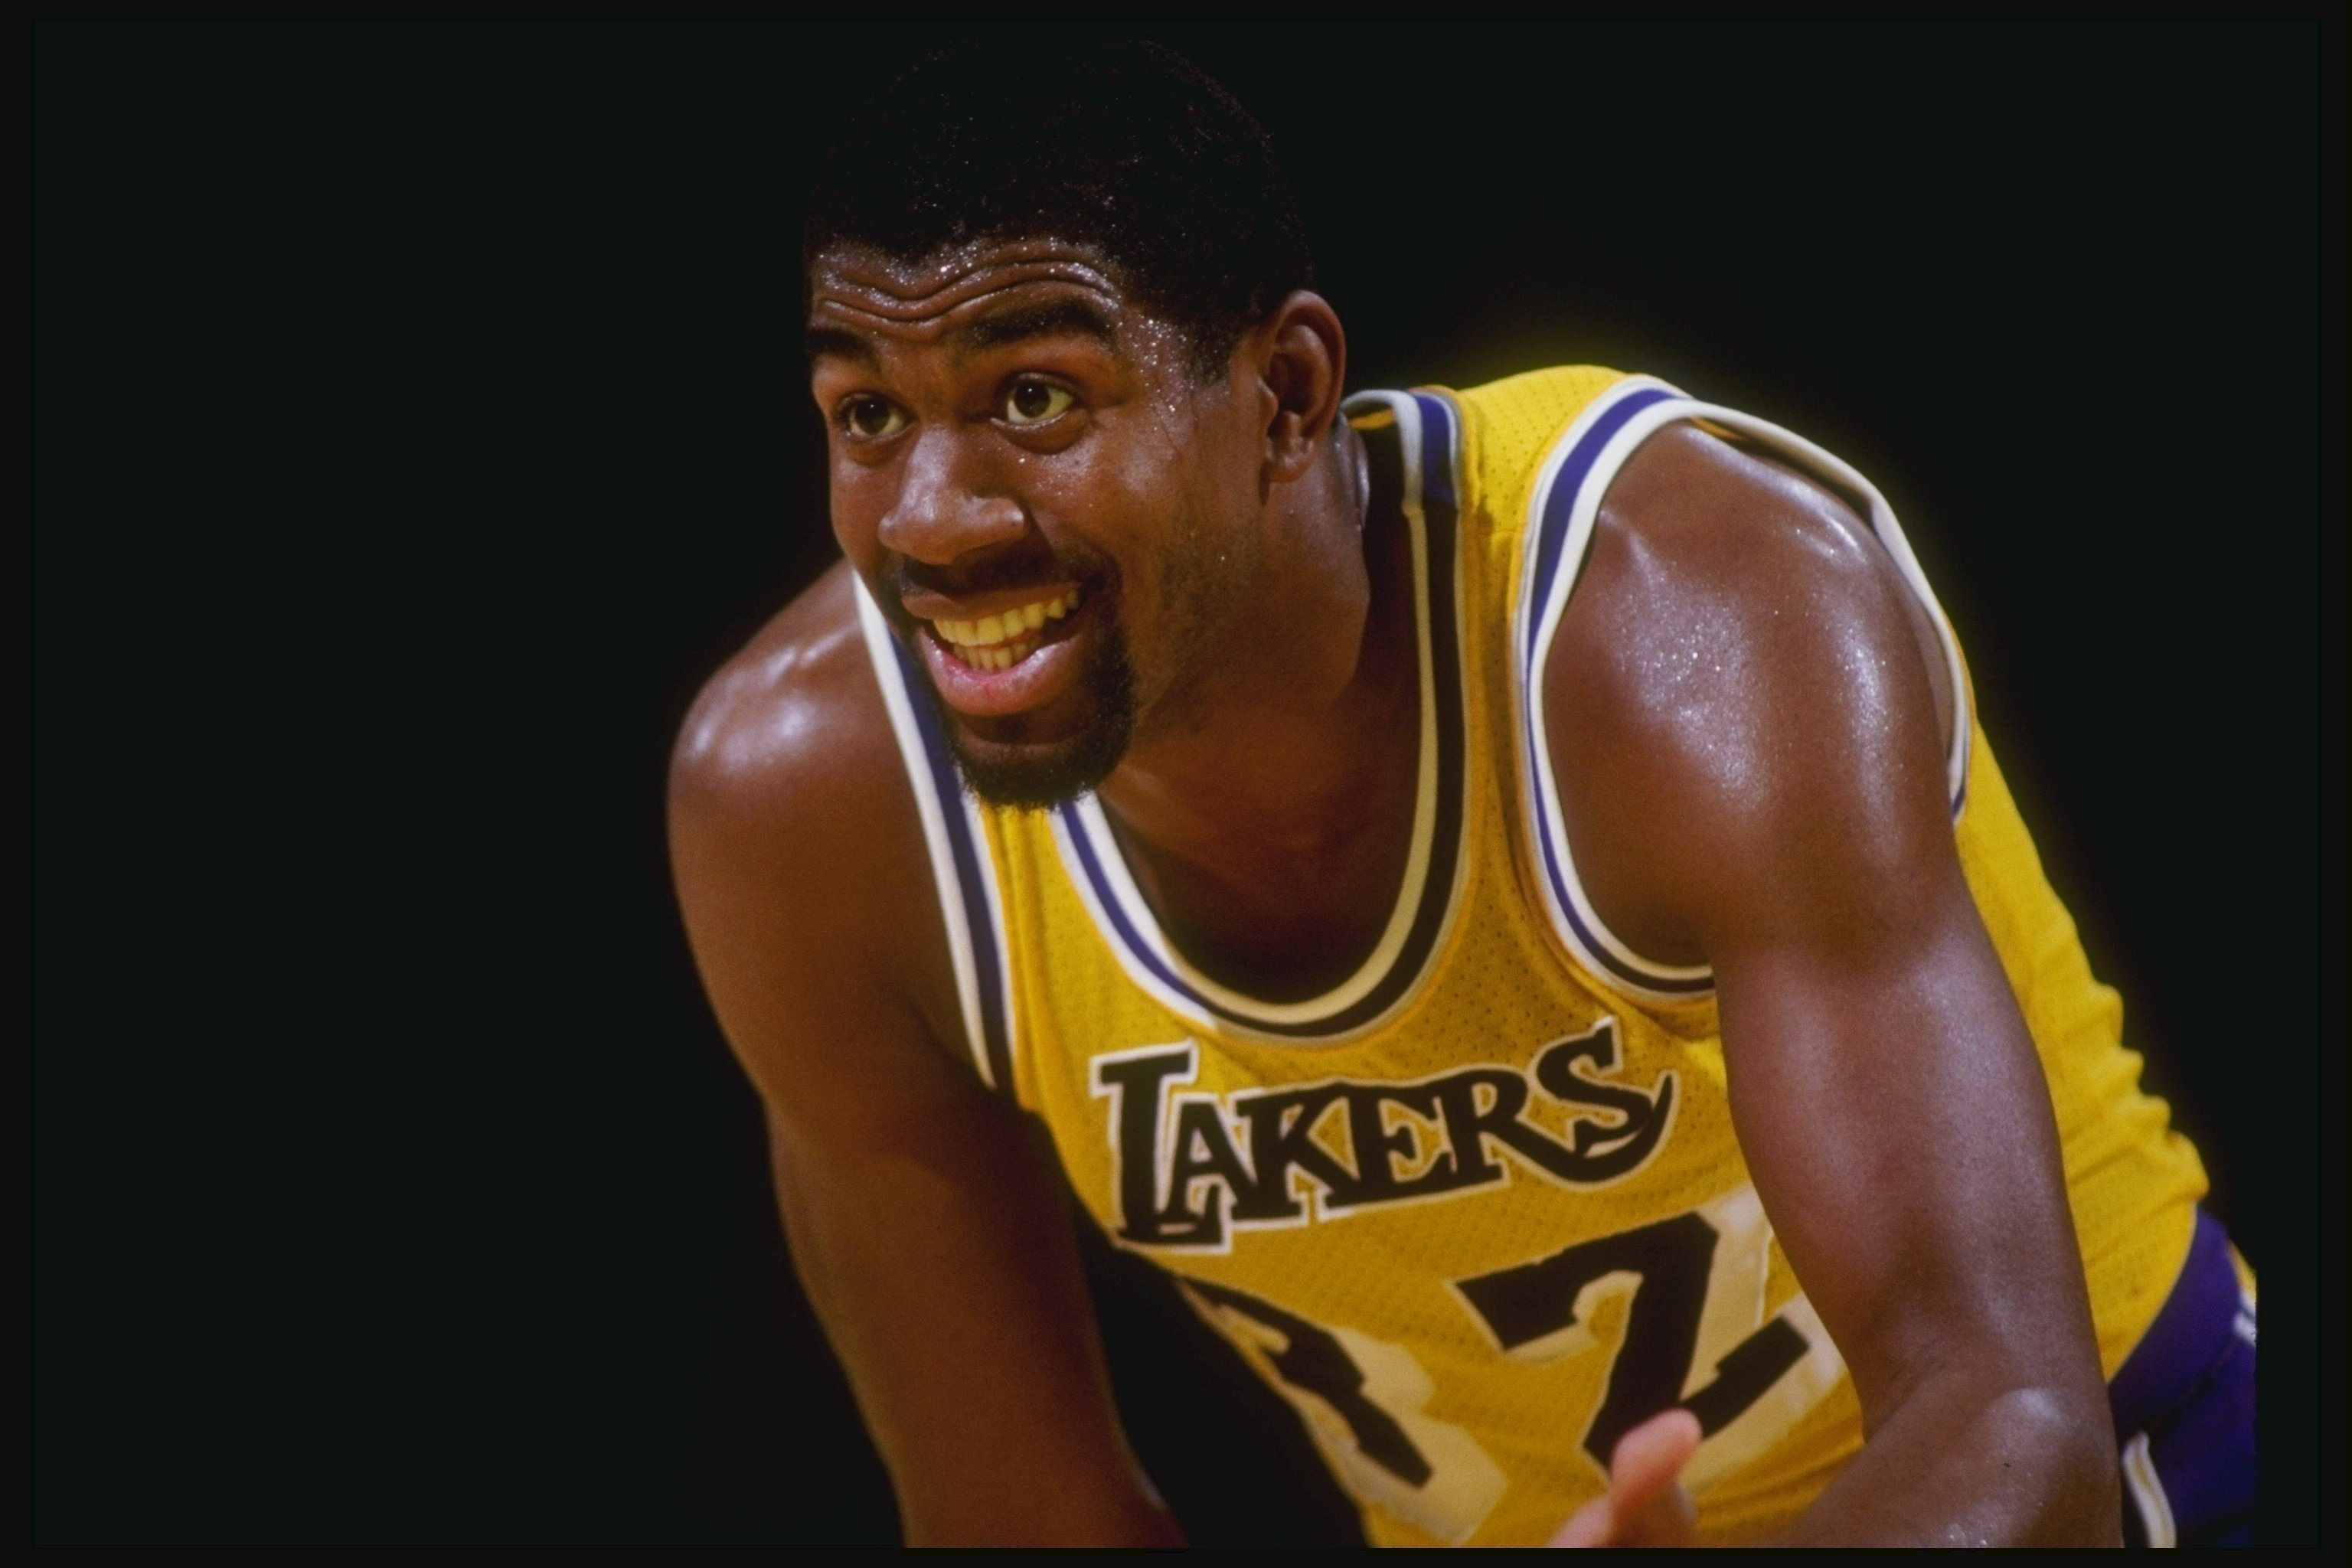 Guard Magic Johnson of the Los Angeles Lakers stands on the court during a game at the Great Western Forum in Inglewood, California.